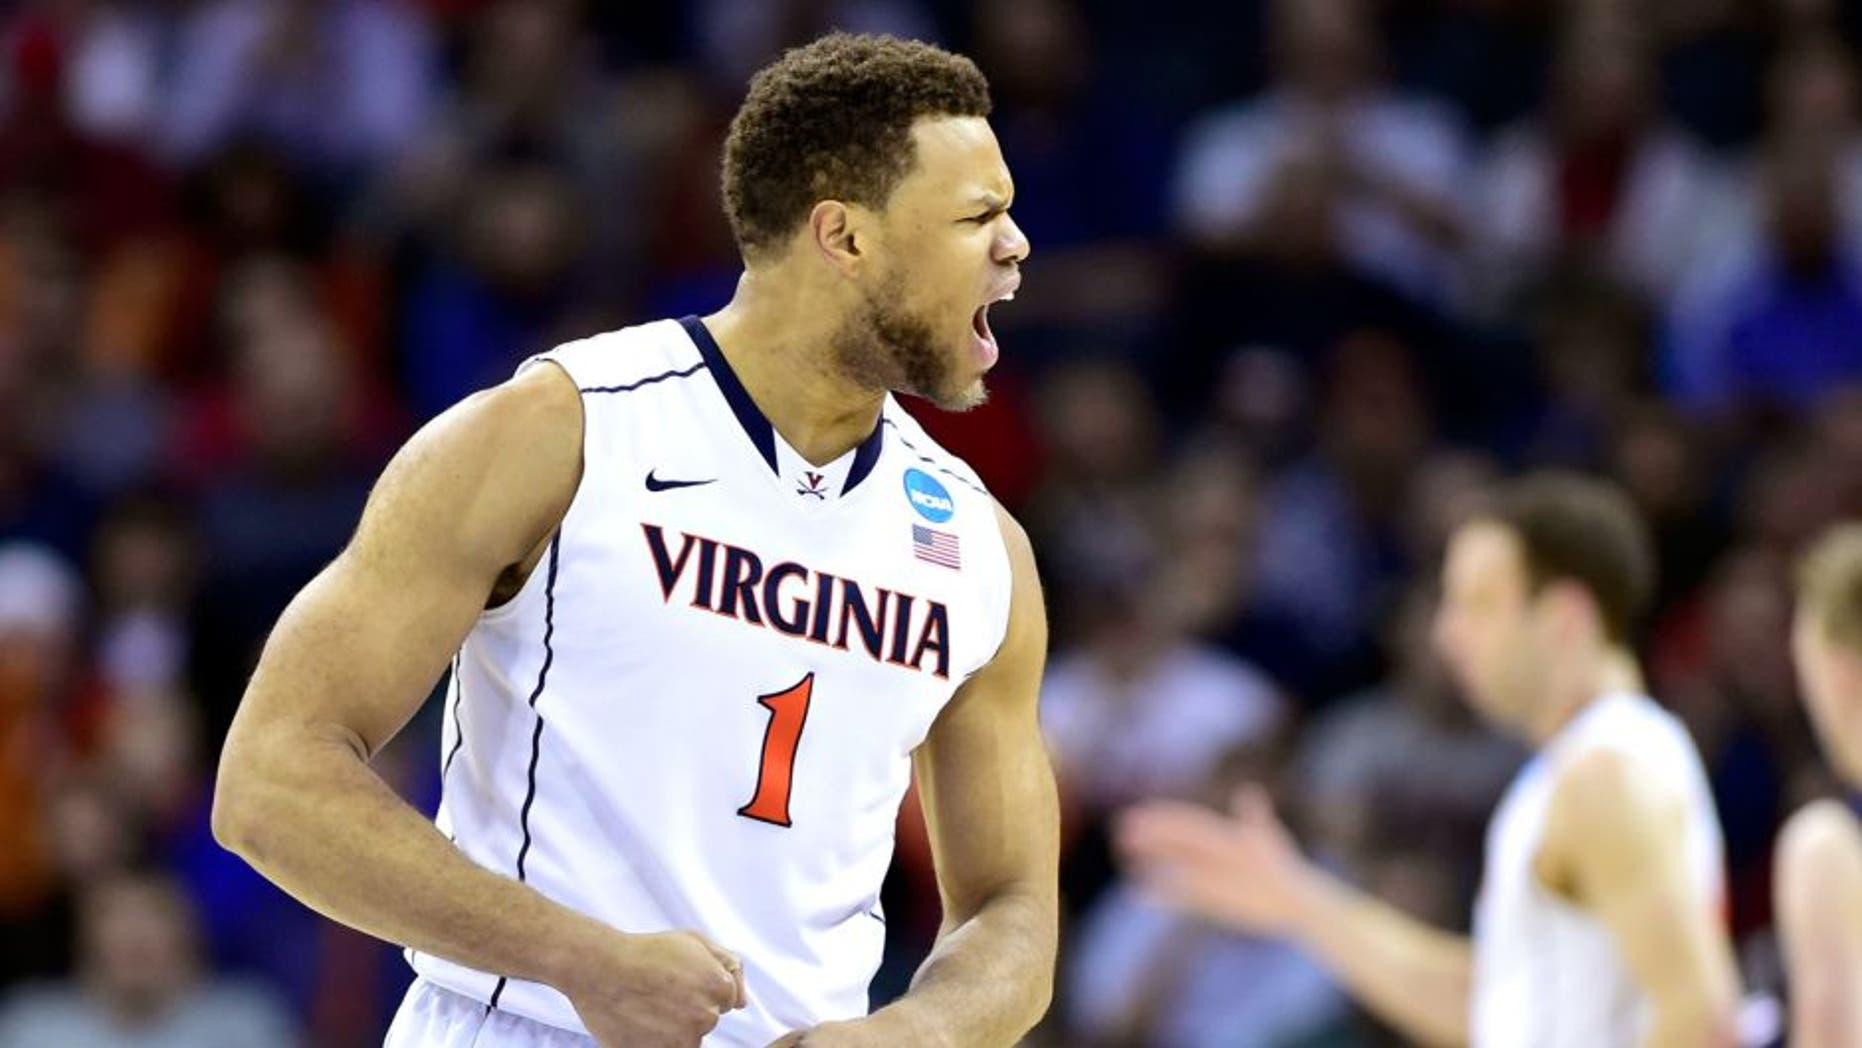 Mar 20, 2015; Charlotte, NC, USA; Virginia Cavaliers guard Justin Anderson (1) reacts to a play during the second half against the Belmont Bruins in the second round of the 2015 NCAA Tournament at Time Warner Cable Arena. Mandatory Credit: Bob Donnan-USA TODAY Sports